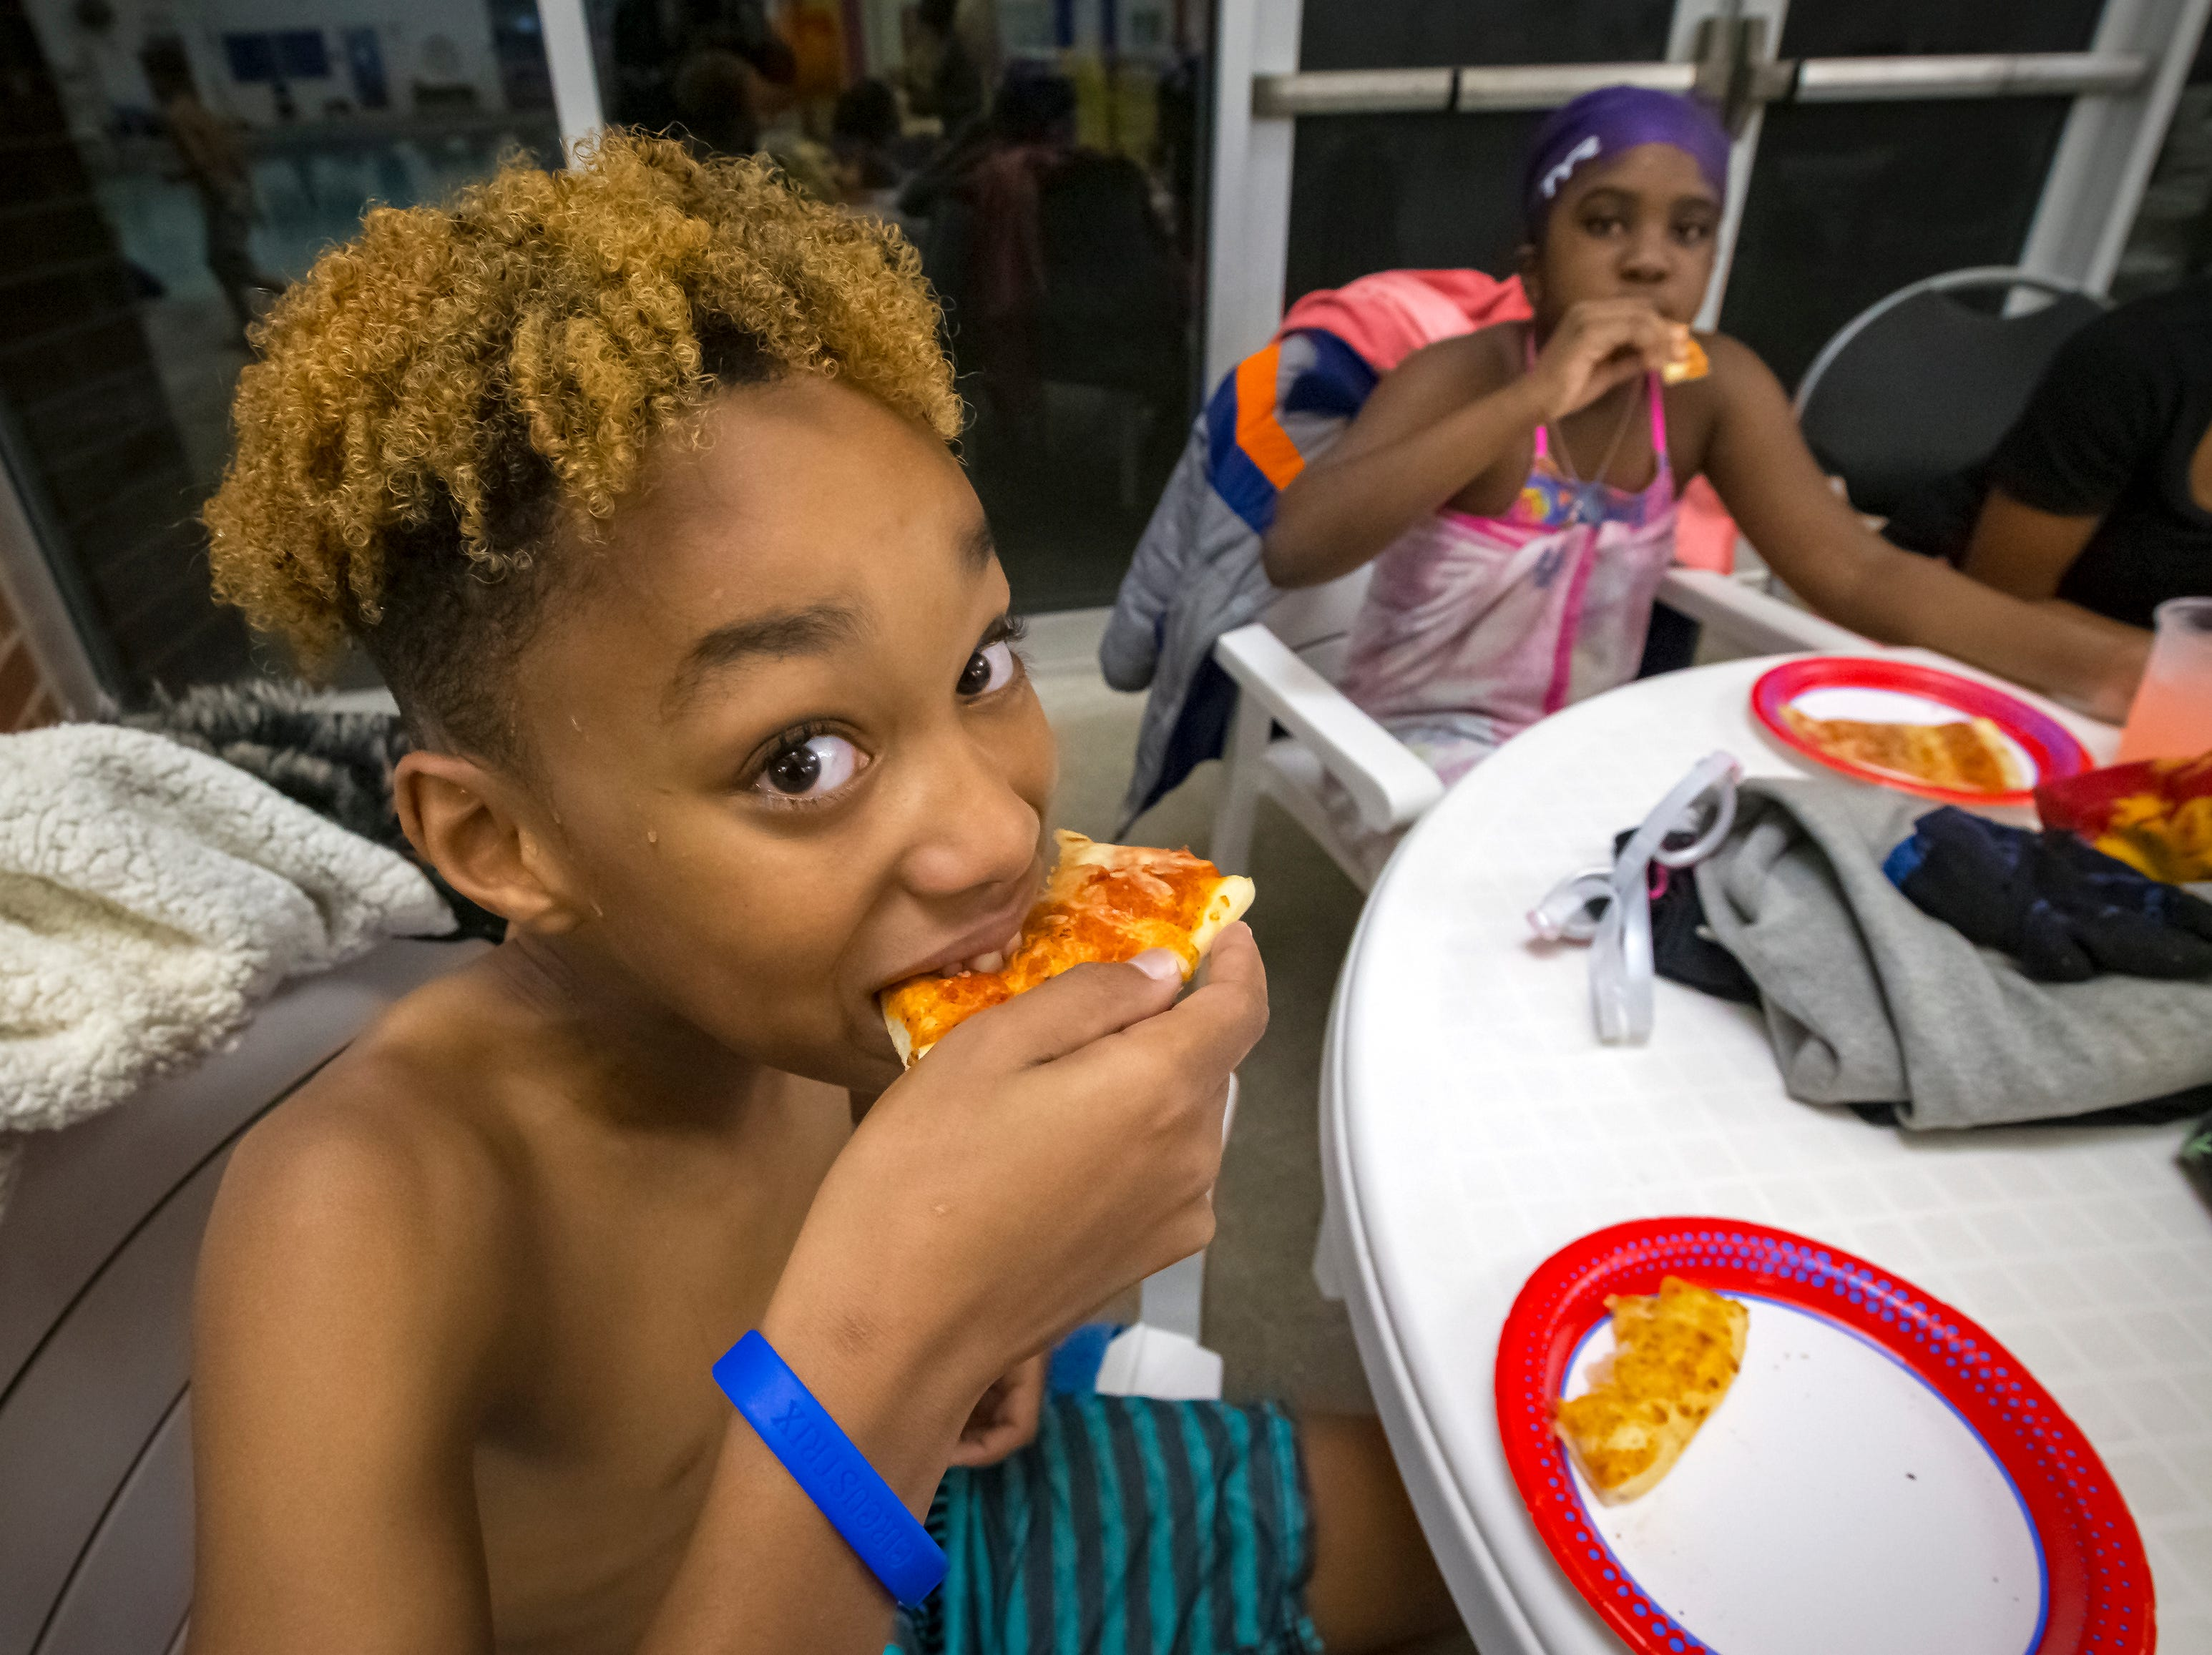 Kassam Bhegani eats a slice of pizza during the pizza party held at Murfreesboro Parks & Rec.'s Spooky Splash event at Patterson Park Community Center.